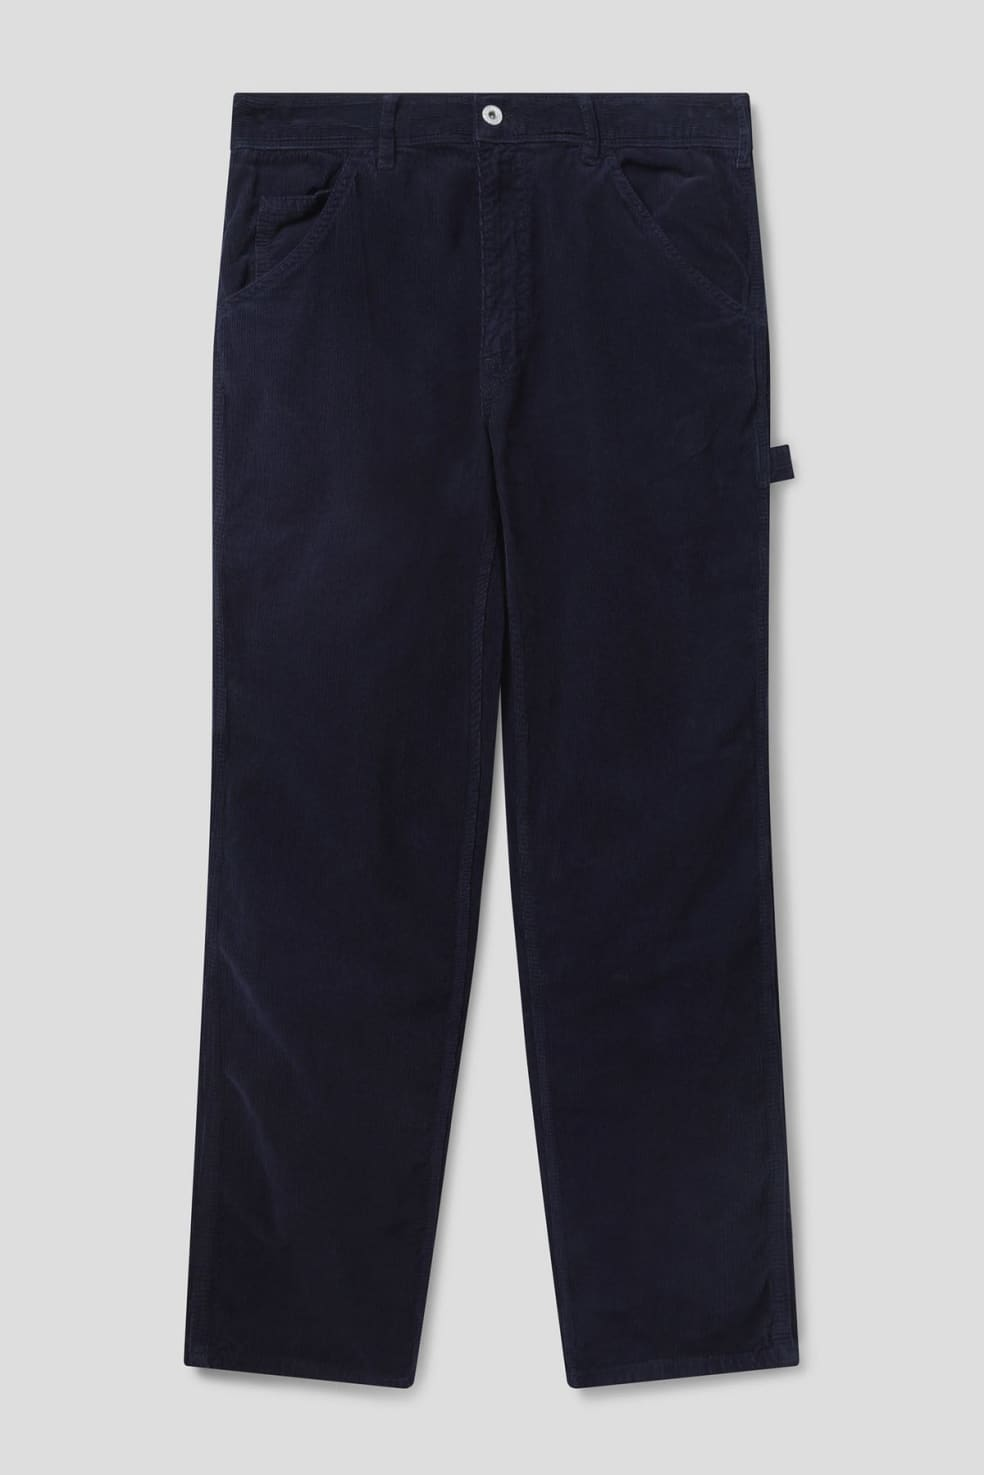 Stan Ray - 80's Painter Pant - Navy Cord | Trousers by Stan Ray 1